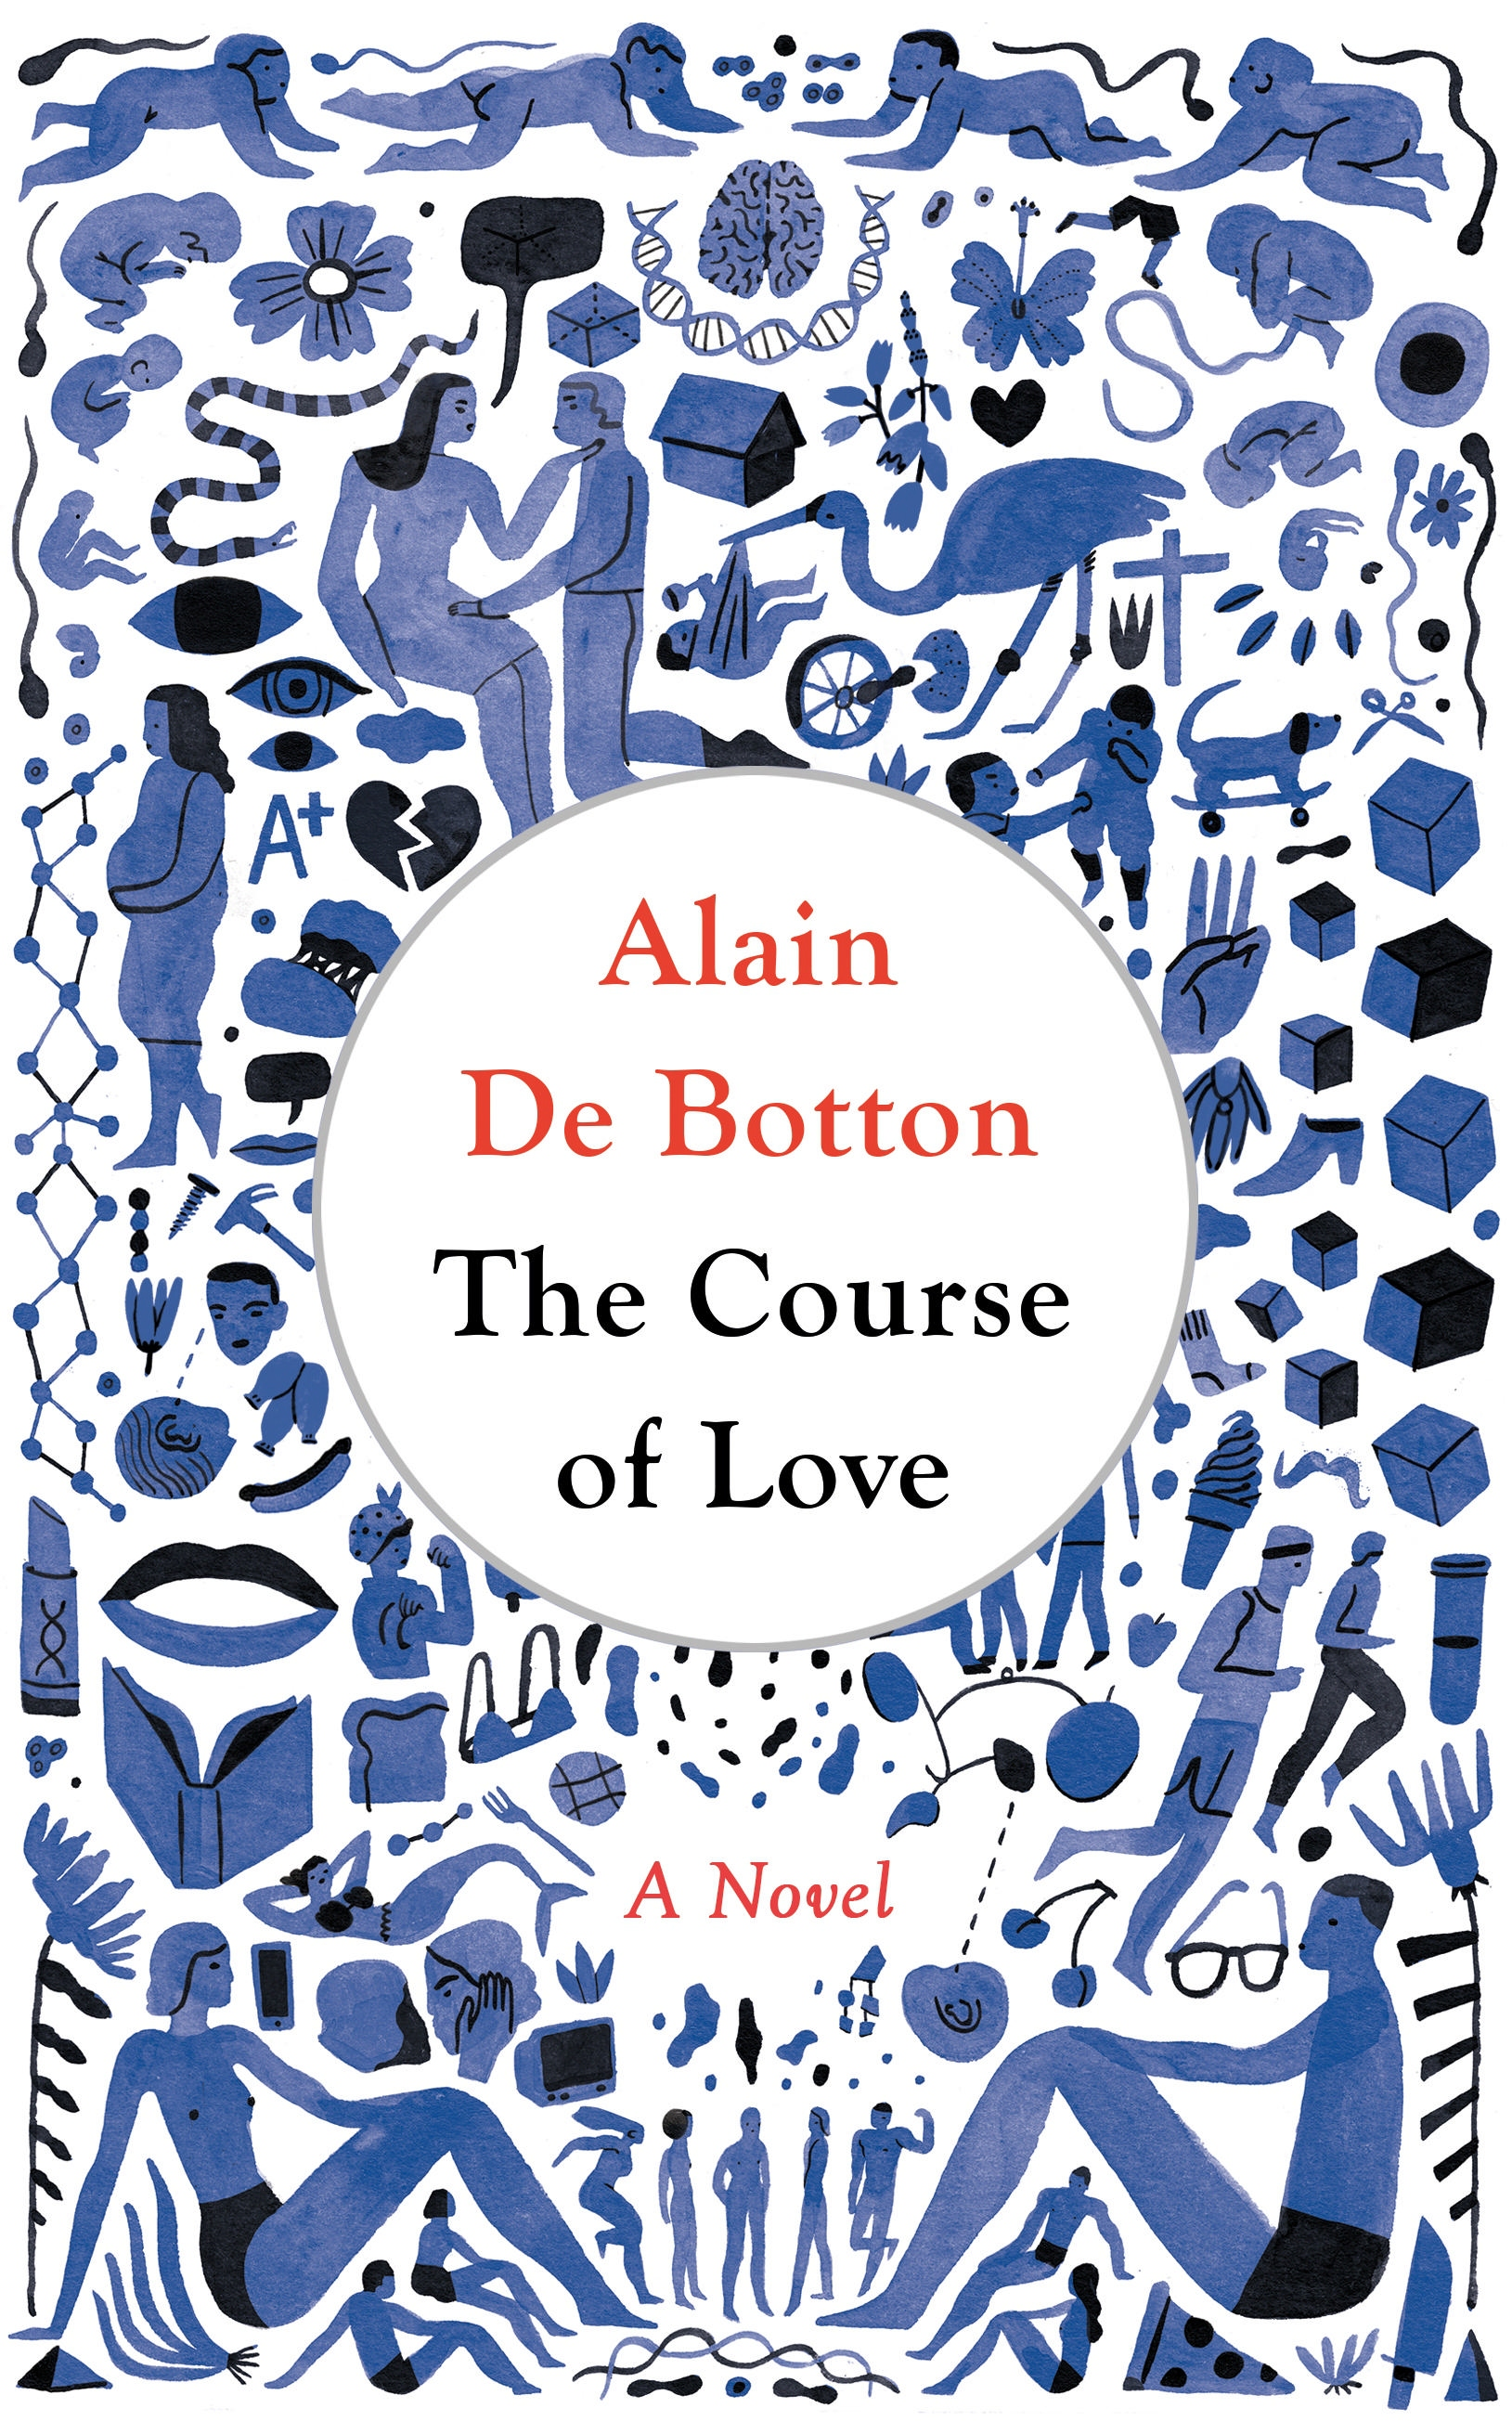 The Course of Love by Alain de Botton, ISBN: 9780241145470